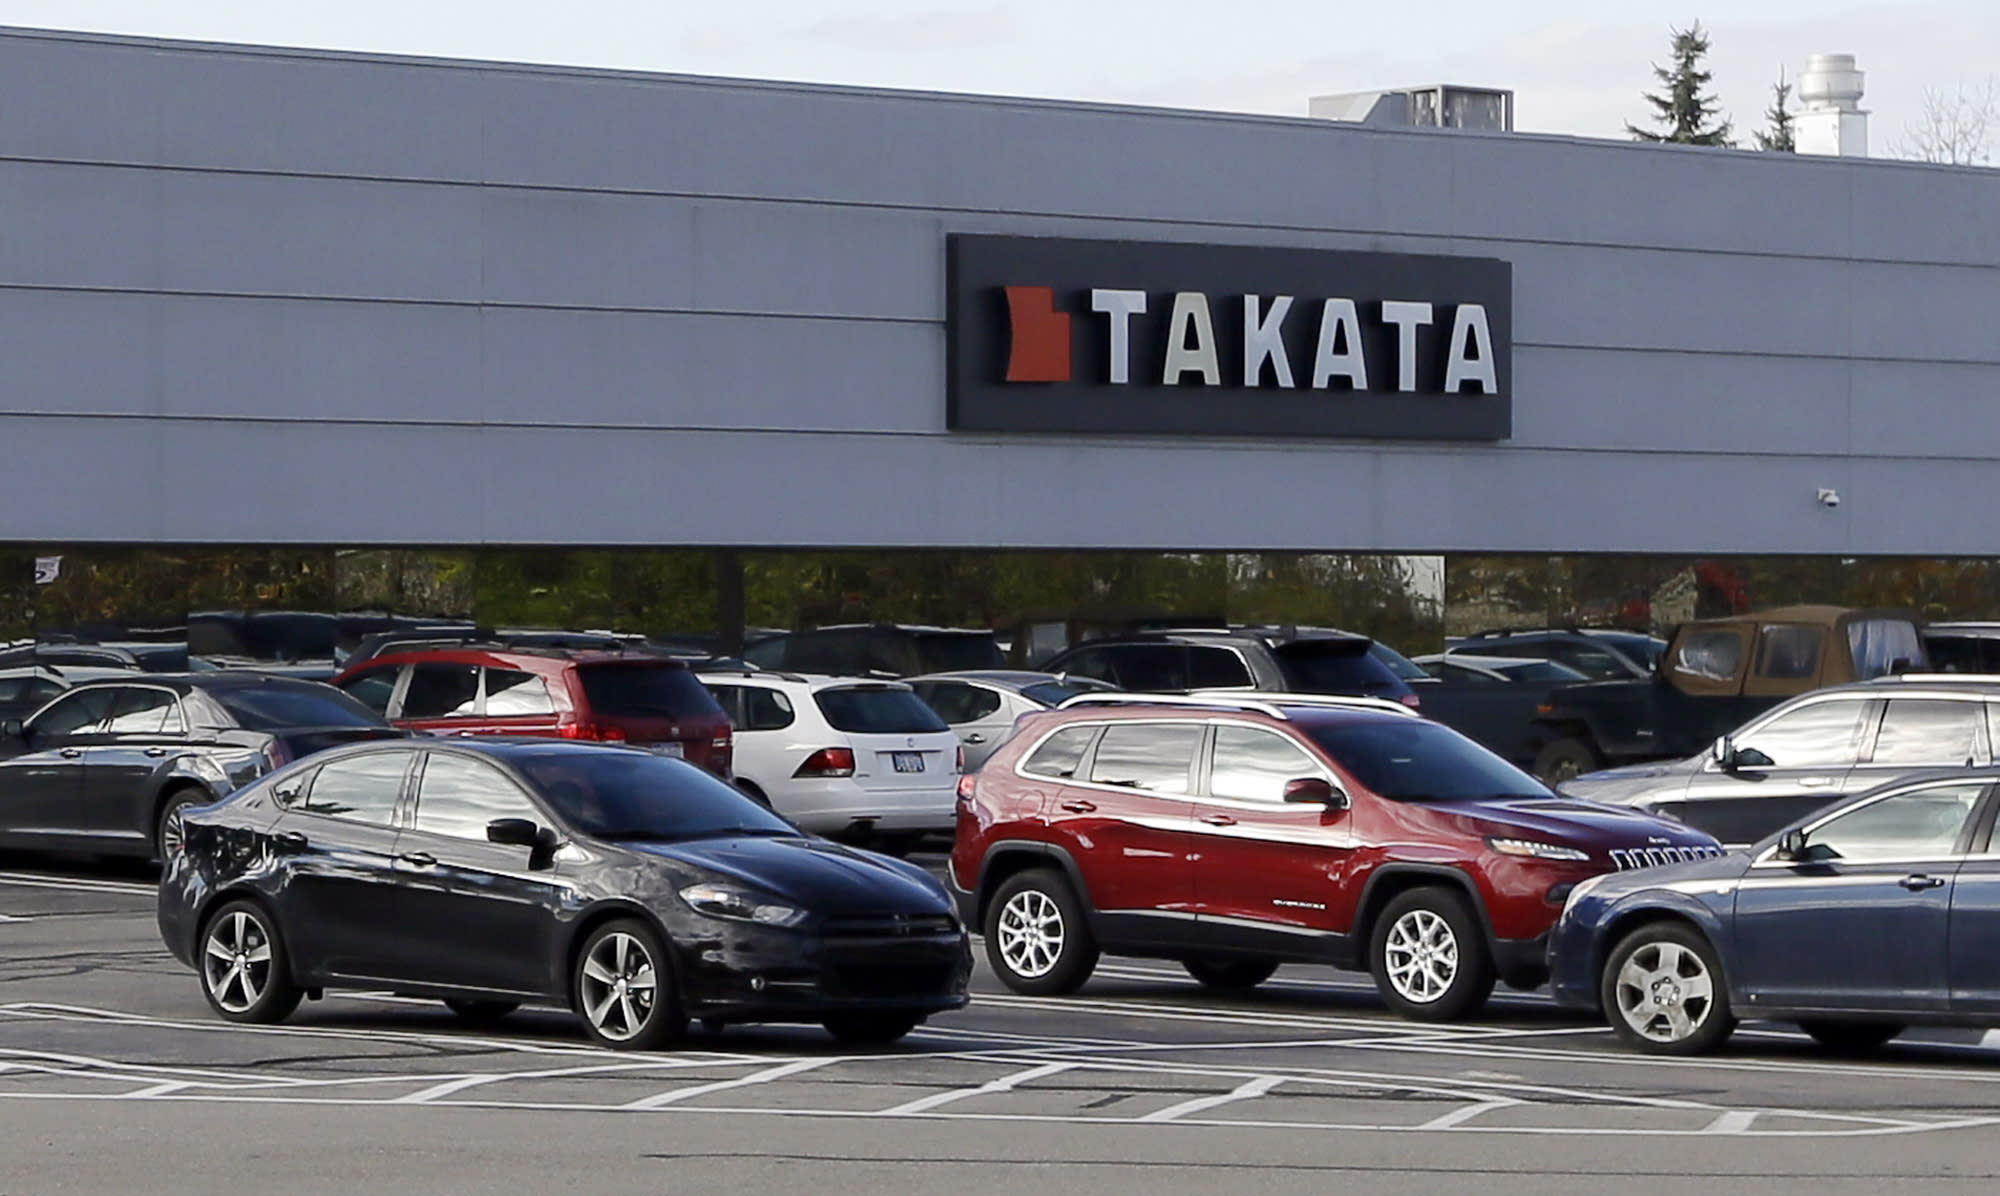 The latest things to know about the Takata air bag recall